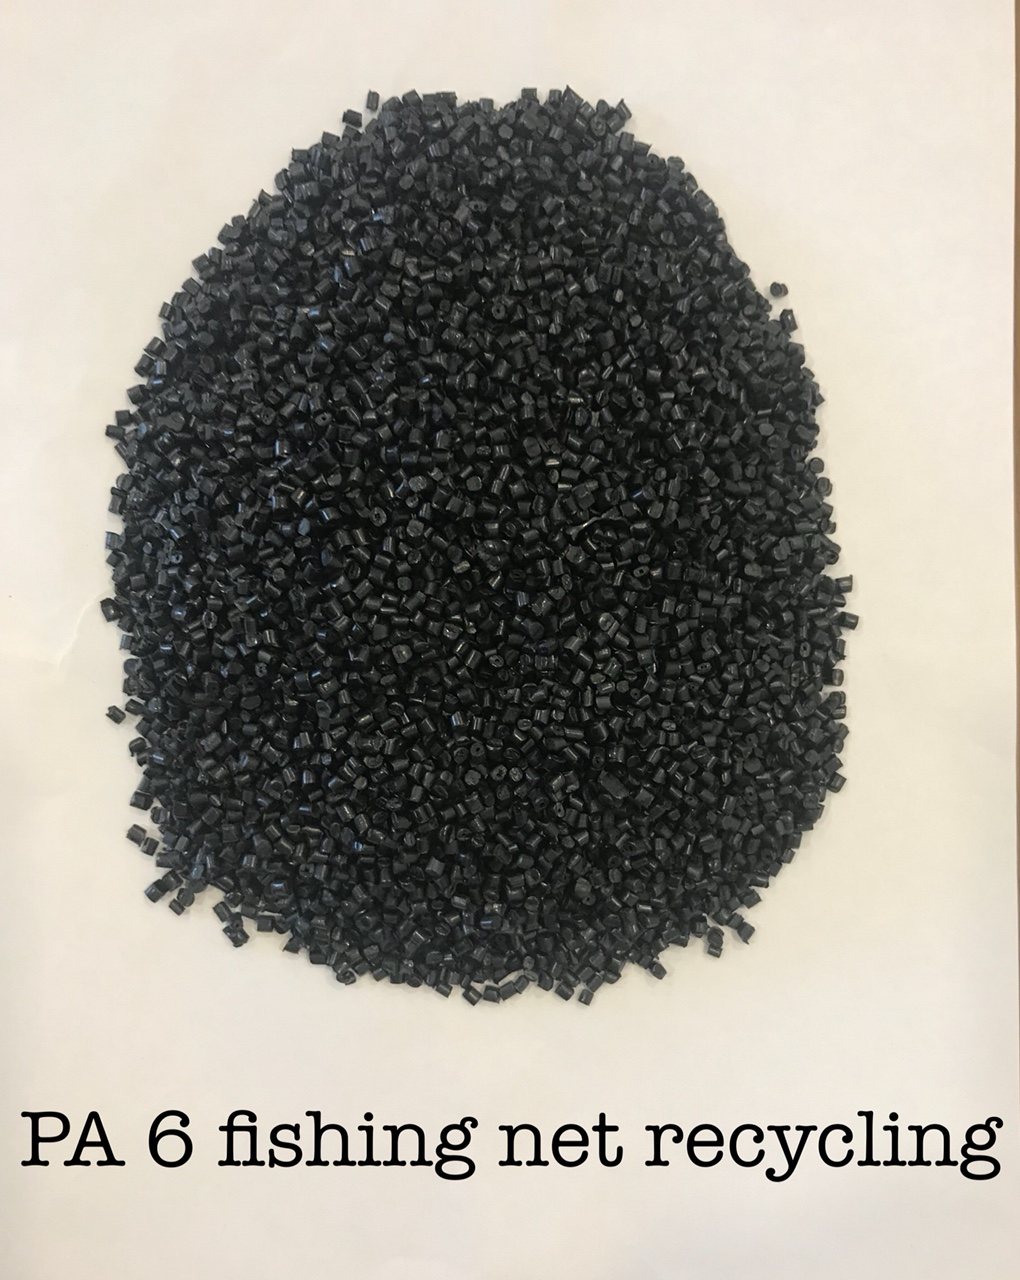 PA6 FISHING NET RECYCLING